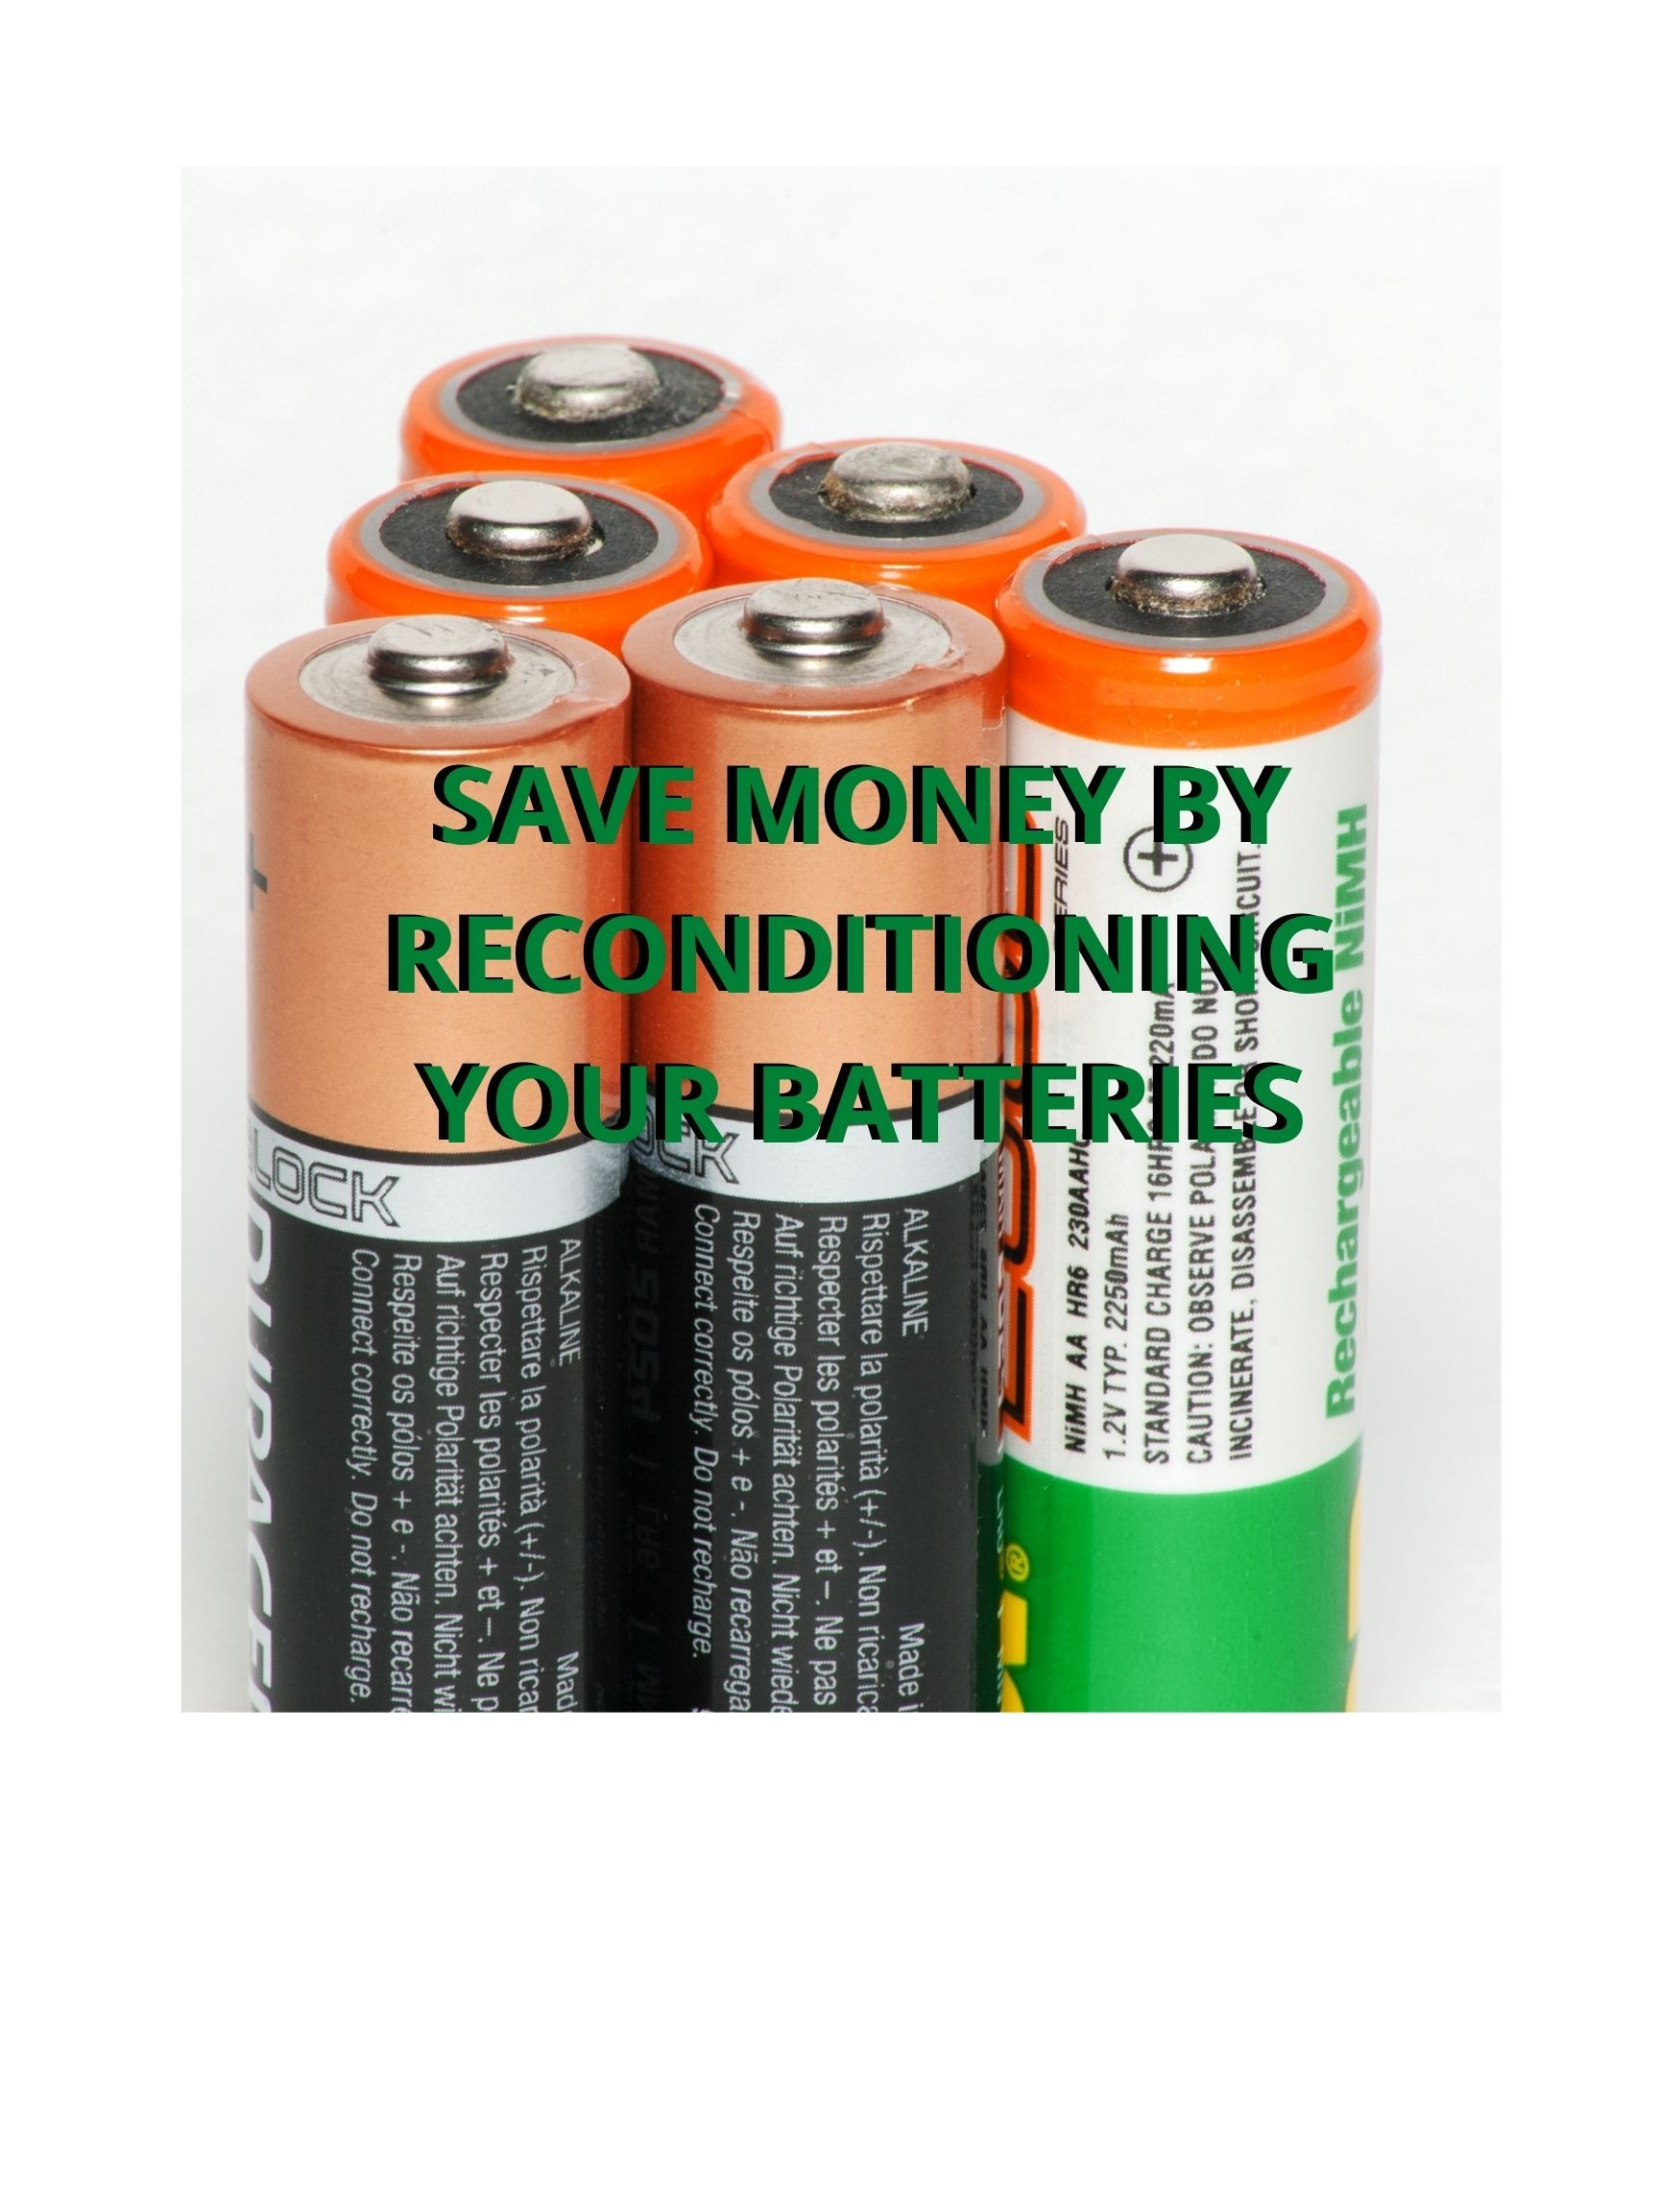 Batteries And Reconditioning Saving Money Batteries Money